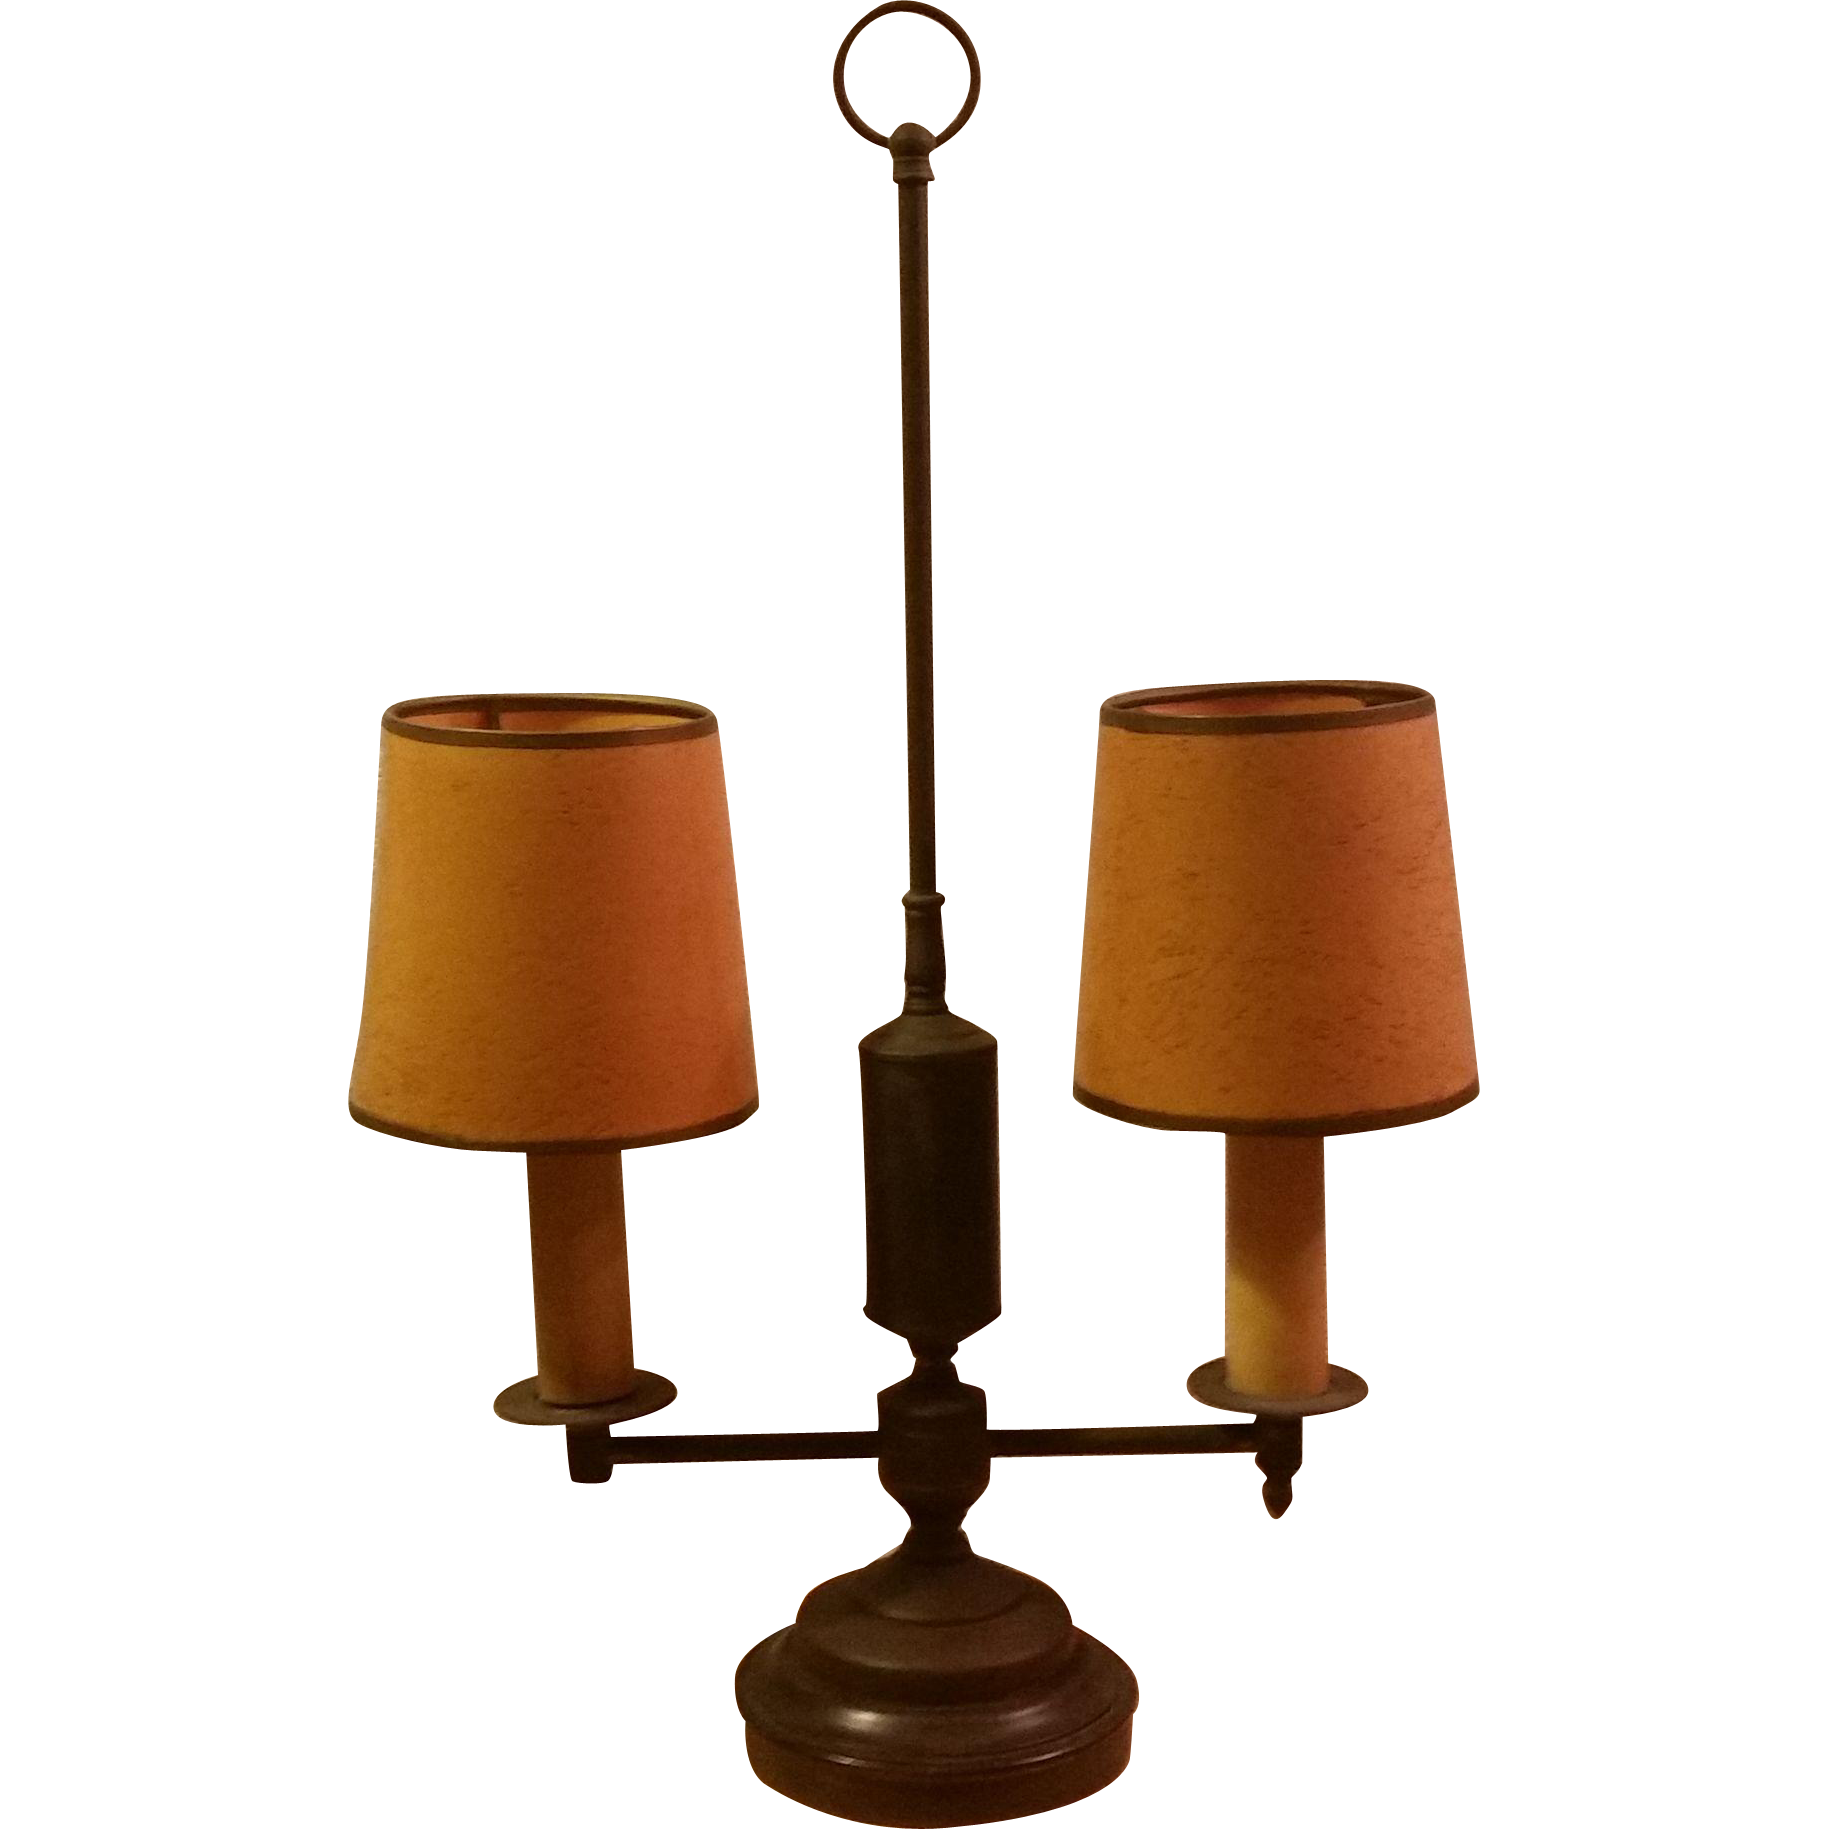 Vintage Two Light Candlestick Desk Lamp from second time